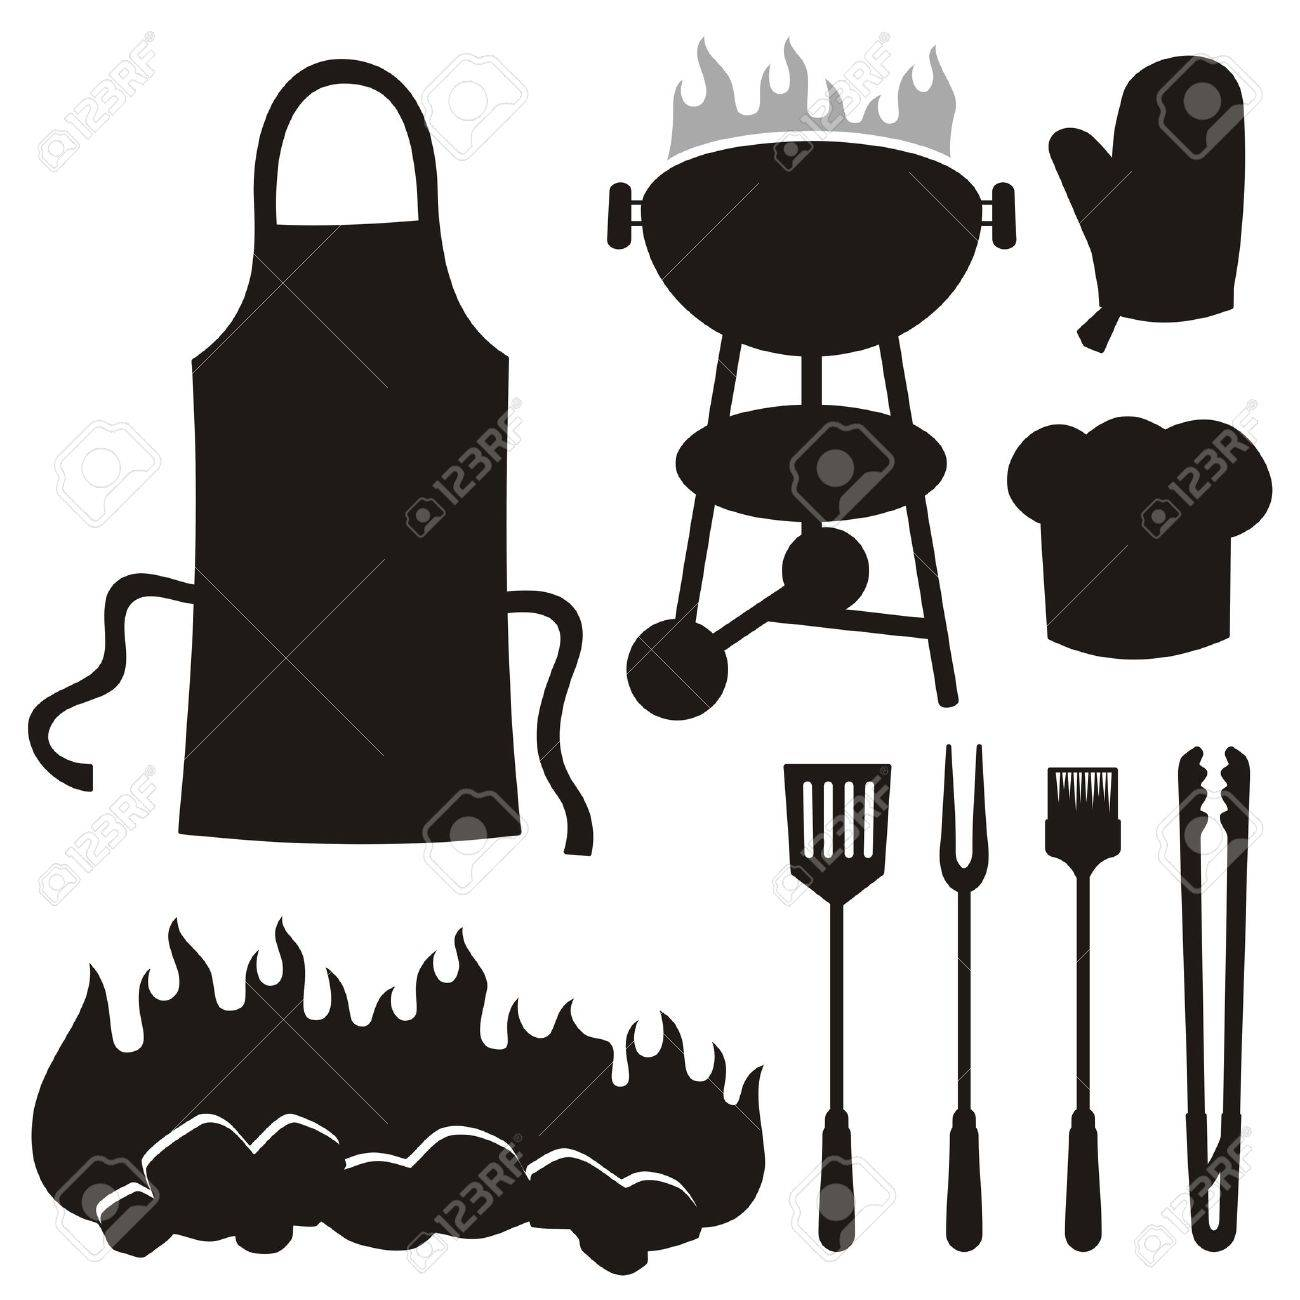 A set of barbeque silhouette icons isolated on white background. Stock Vector - 10615603